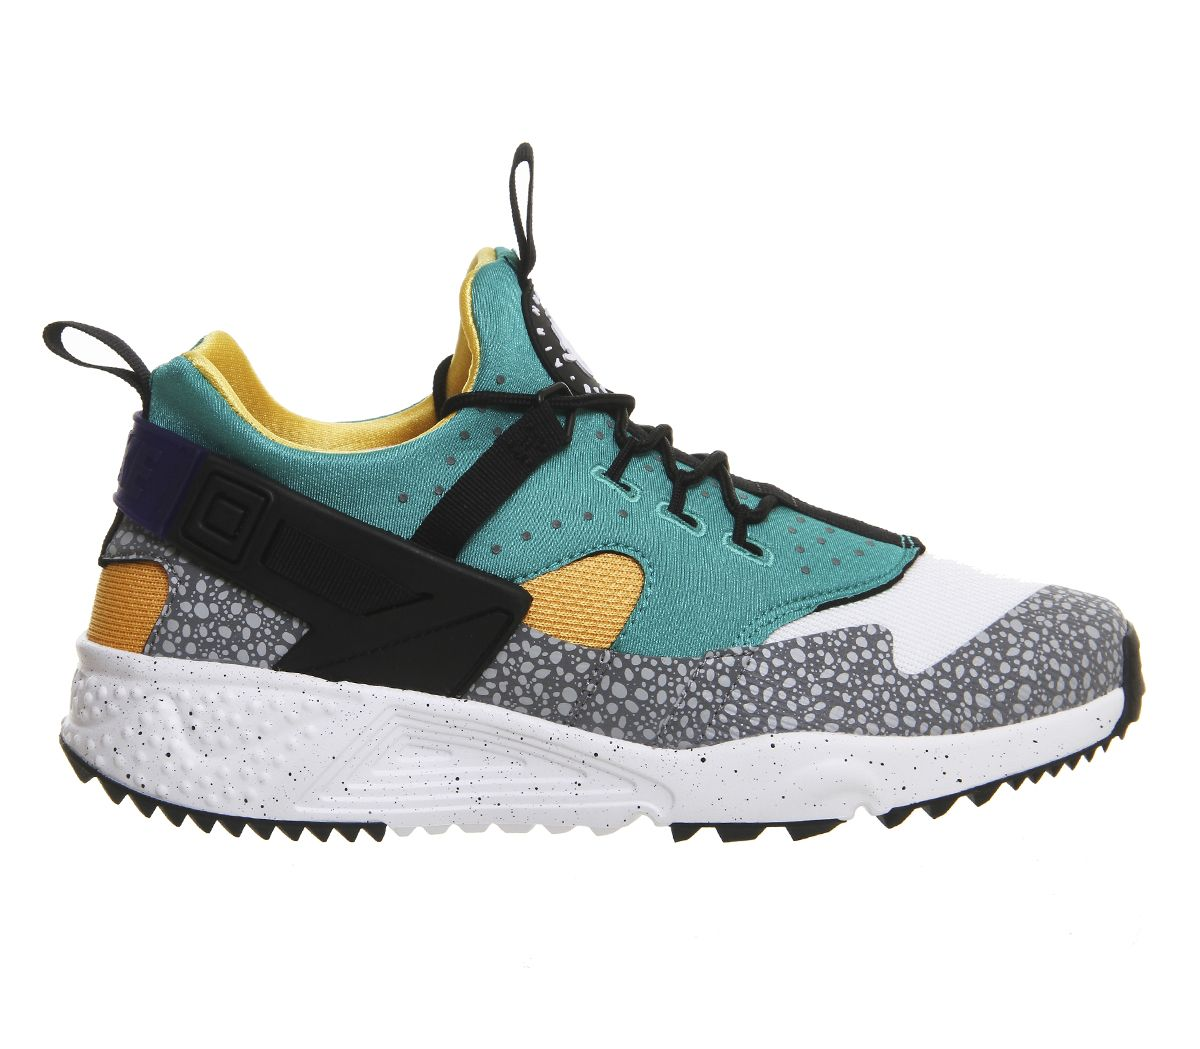 best loved ce370 f2811 Buy White Black Emerald Green Resin Cool Nike Air Huarache Utility from  OFFICE.co.uk.